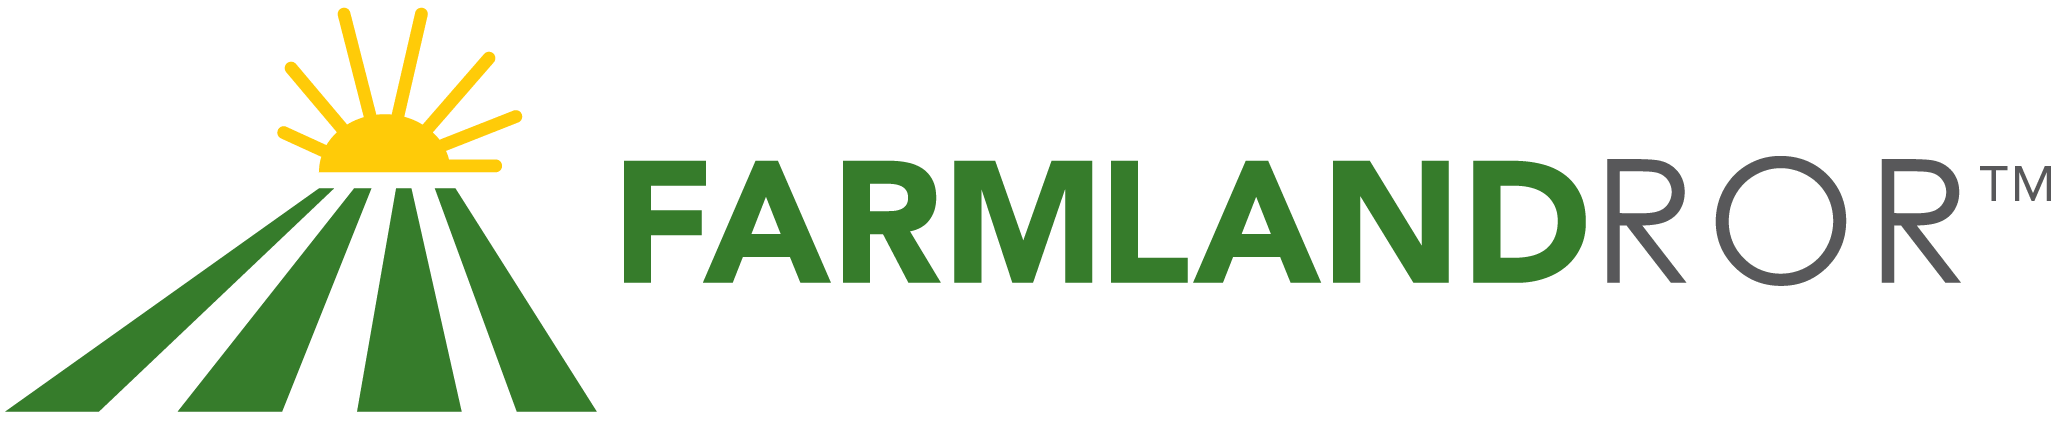 Farmland Investment Calculator | Farmland Agricultural Calculator [FREE] Logo